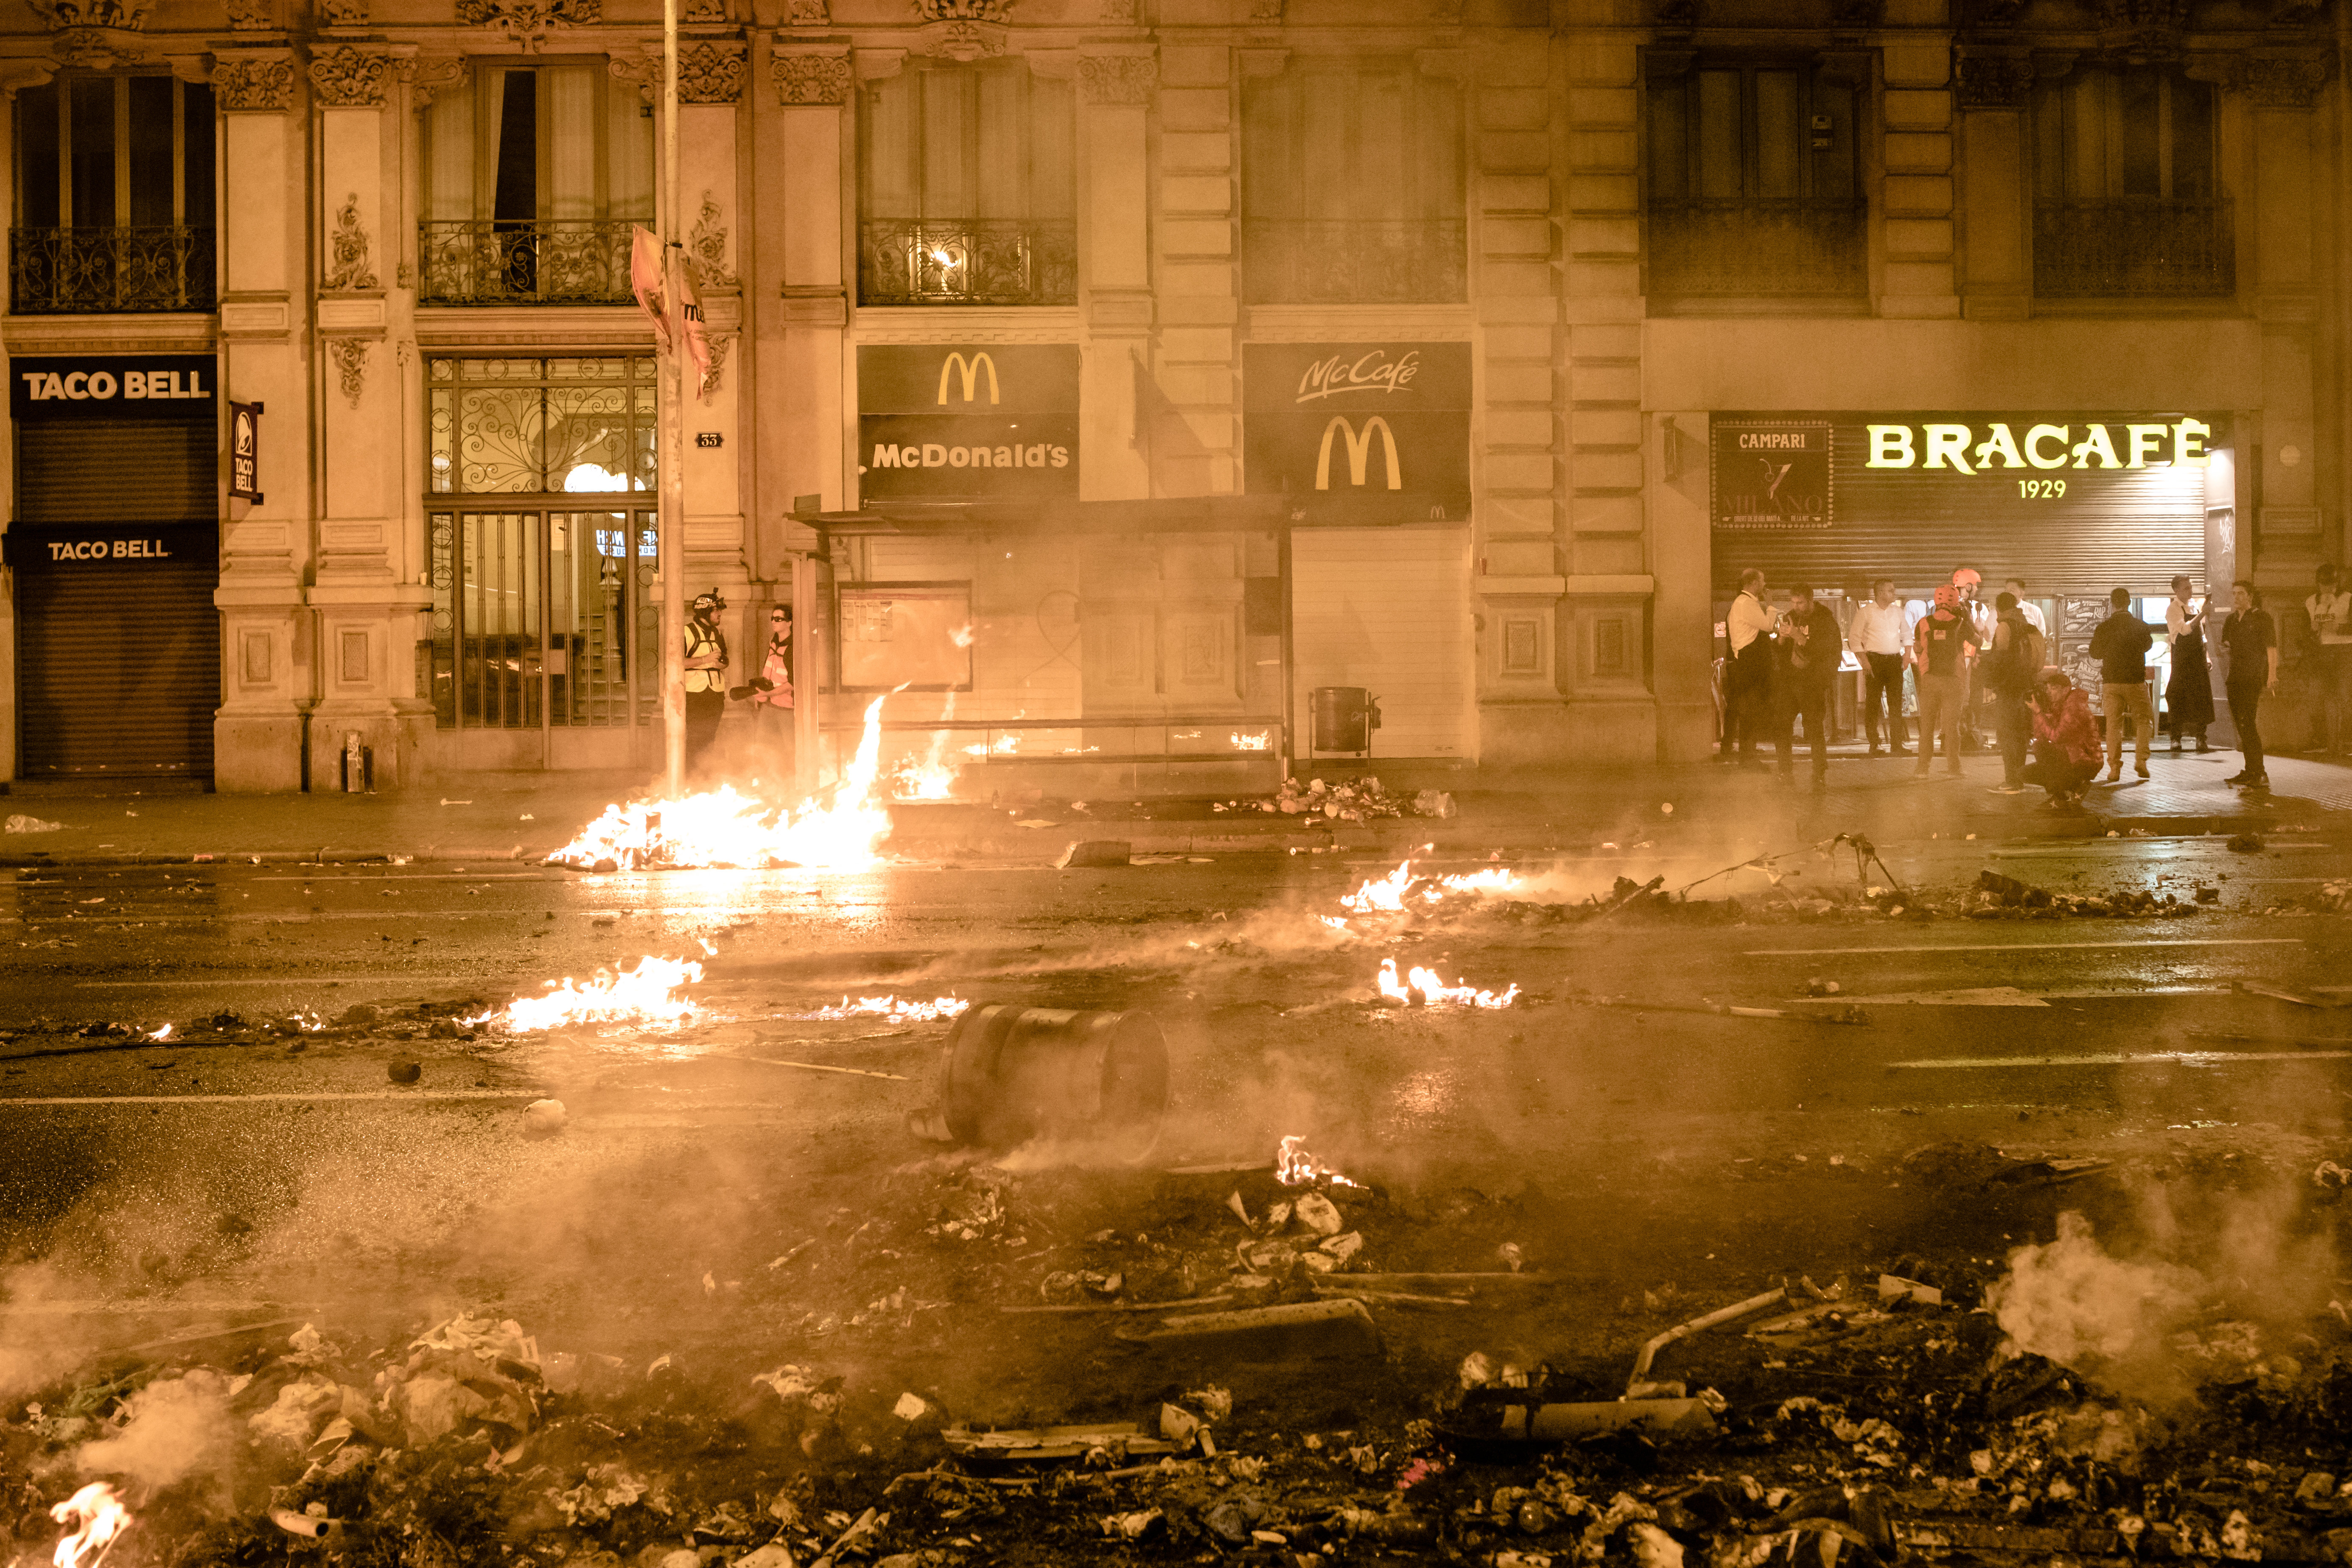 Riots in Barcelona against the judicial sentence by which Catalan politicians face harsh prison sentences by the Spanish state. Radical groups clashed with security forces and set up multiple barricades throughout the city